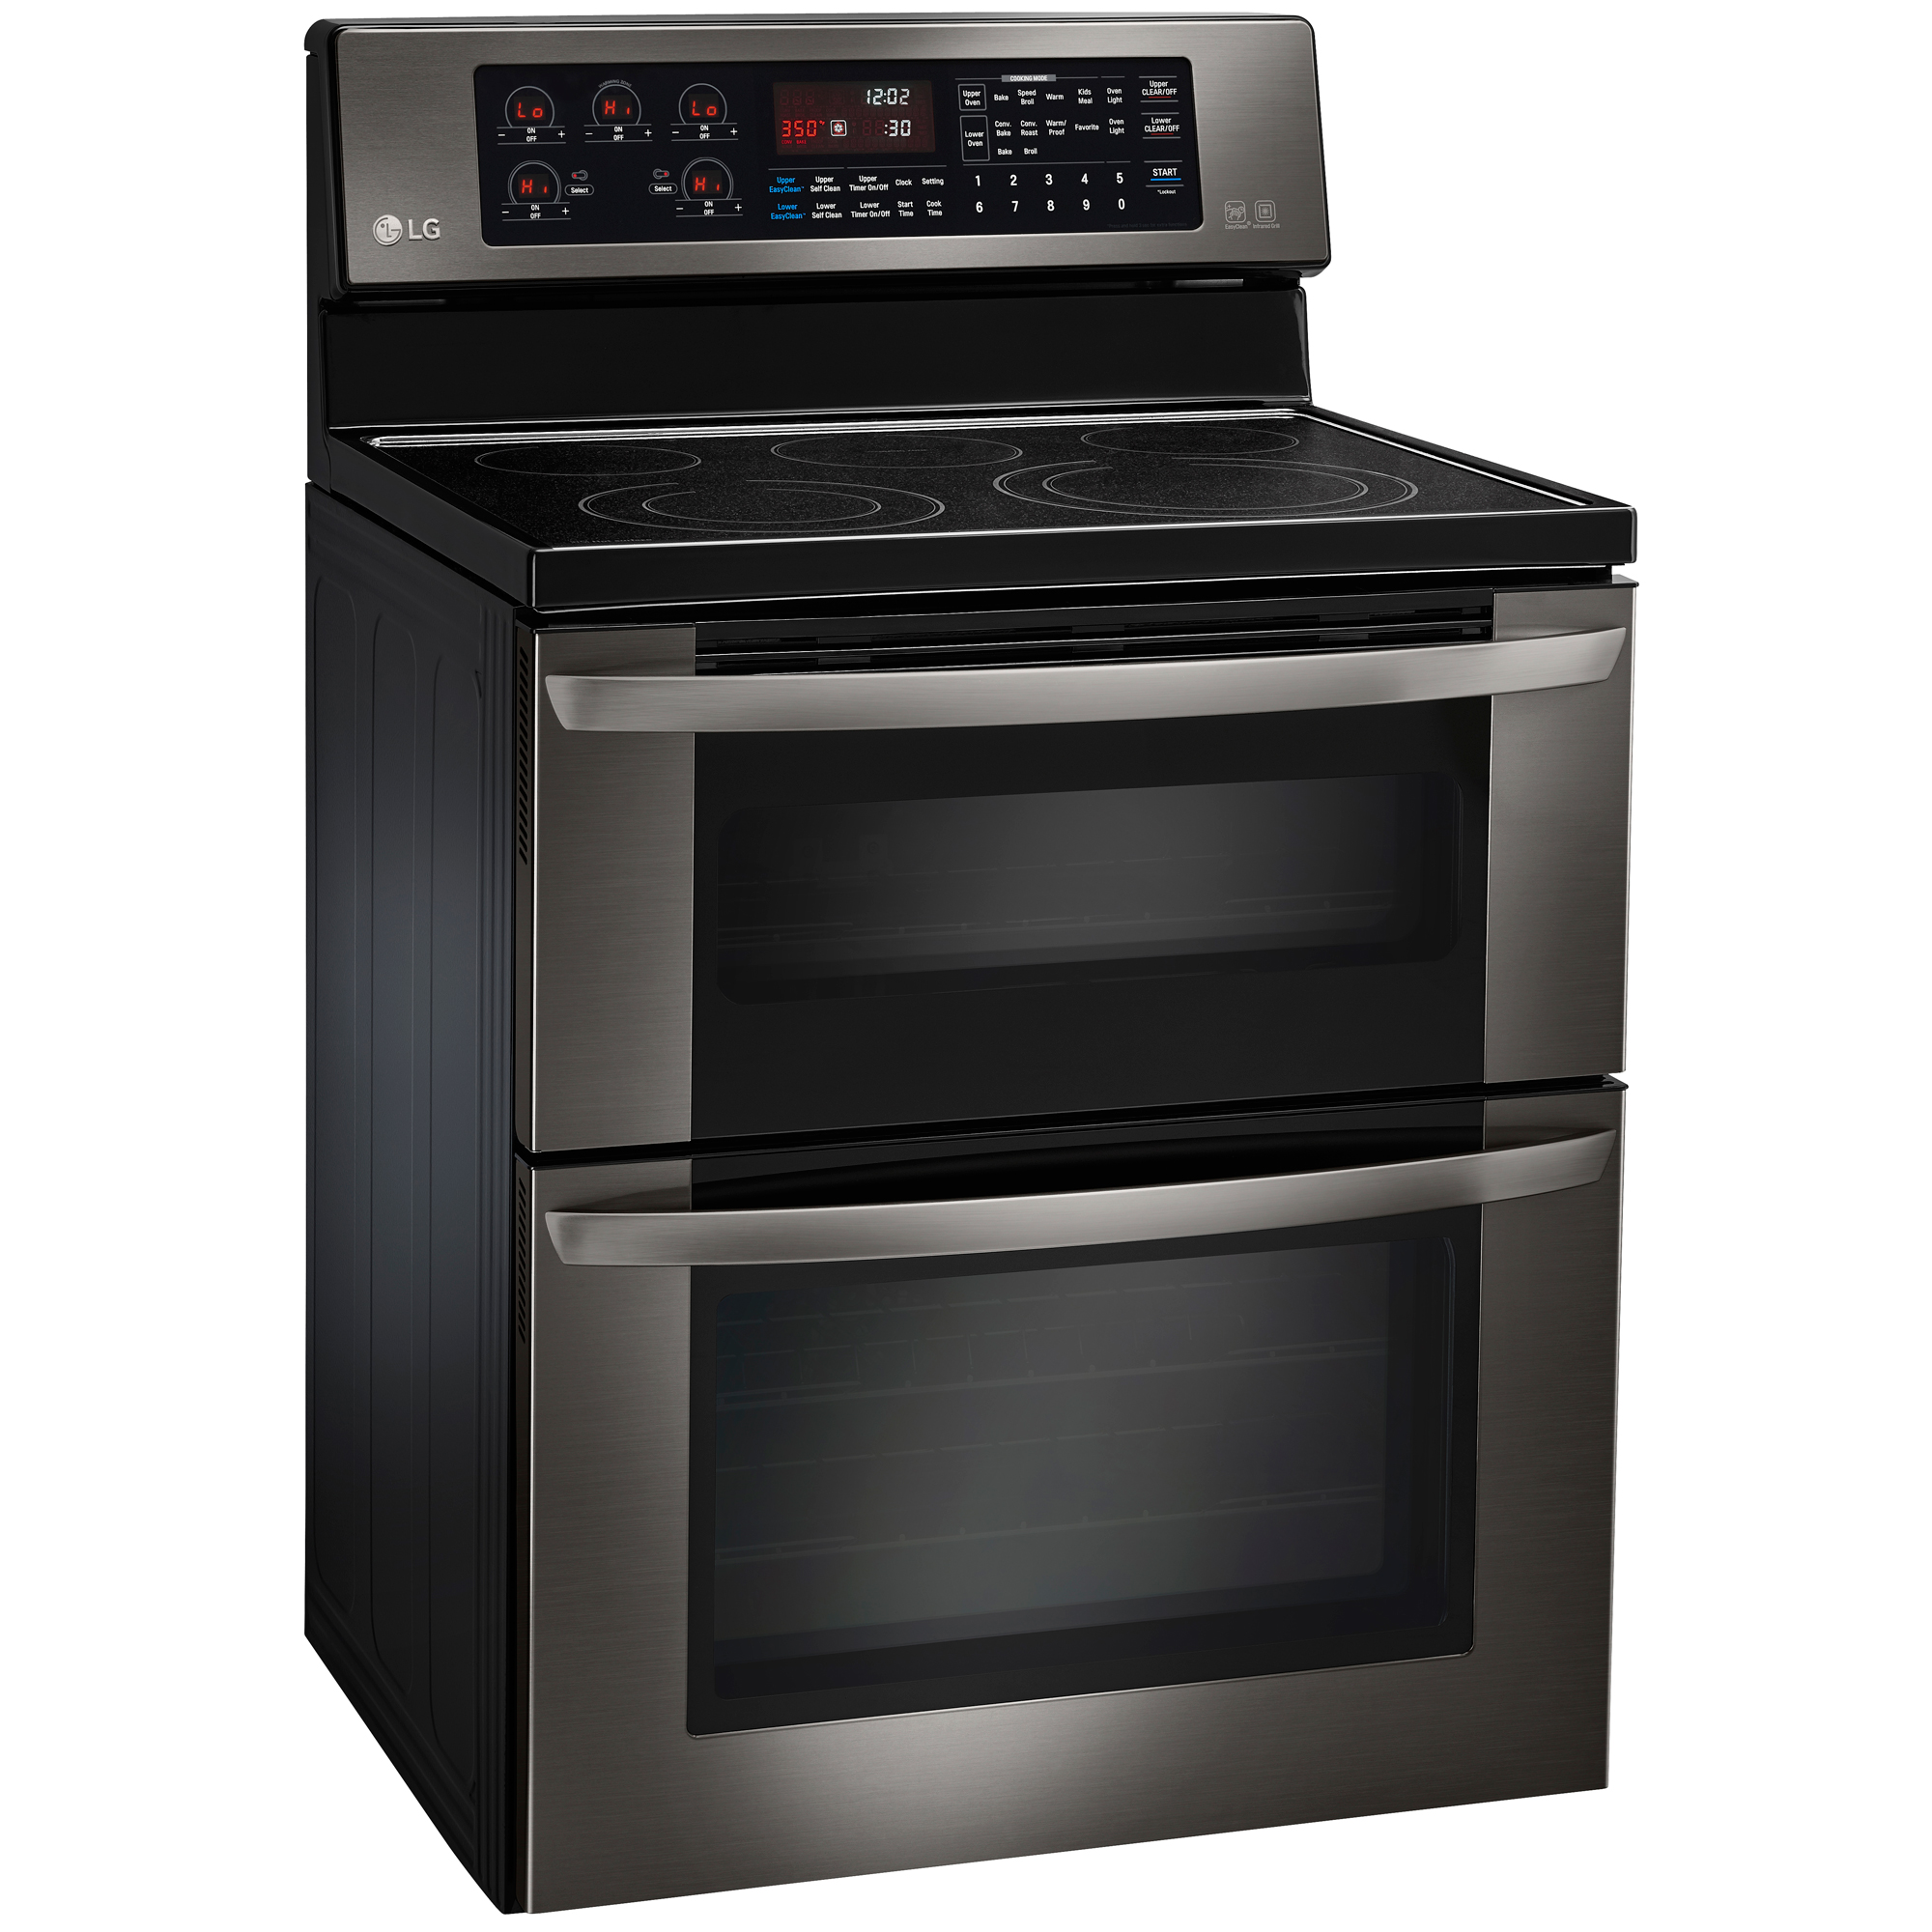 LG LDE3037BD 6.7 cu. ft. Double-Oven Electric Range w/Infrared Grill - Black Stainless Steel